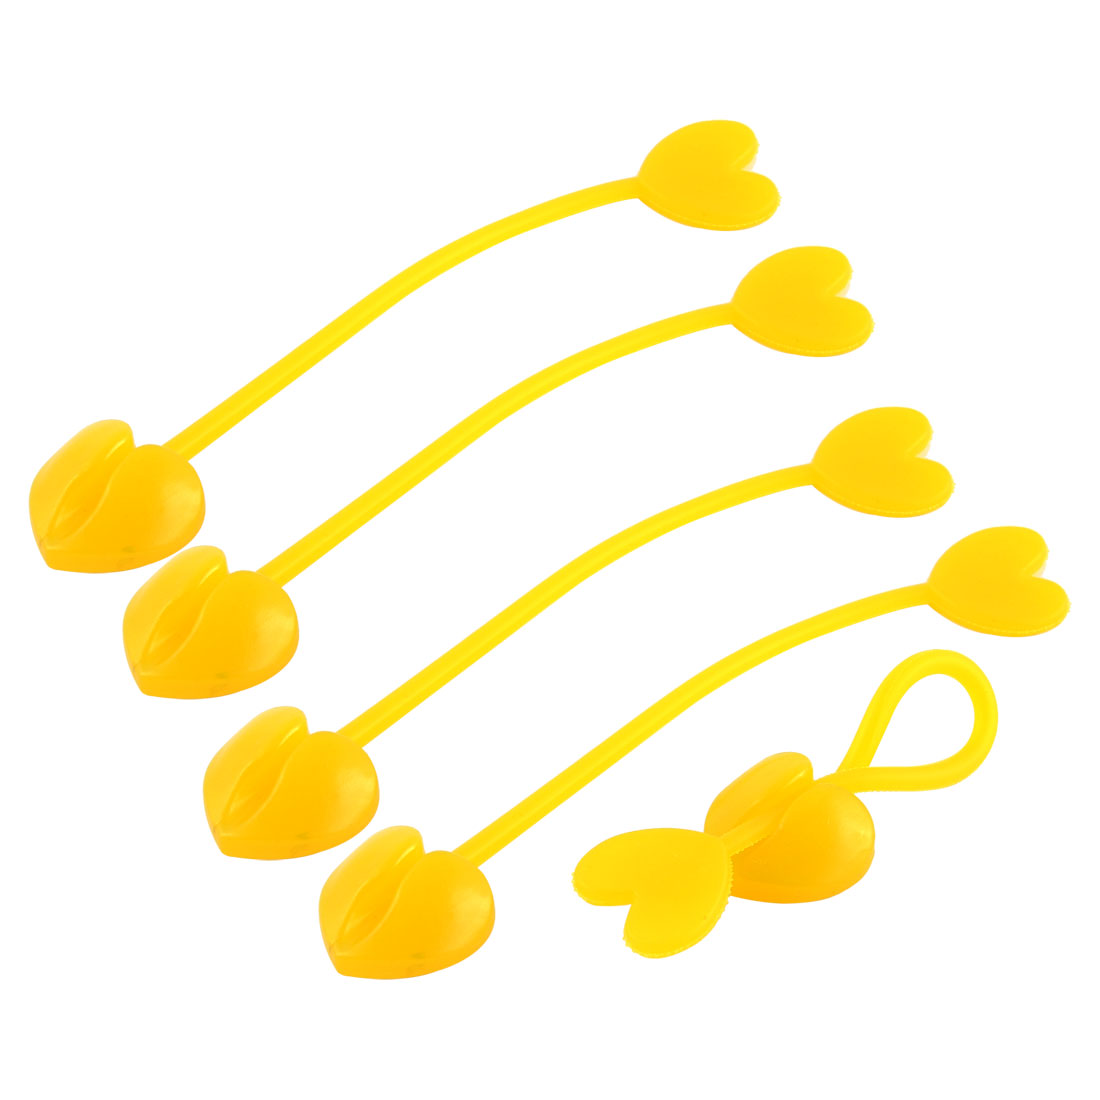 Household Silicone Heart Design Tip Flexible Cable Tie Organizer Wrap Yellow 5pcs